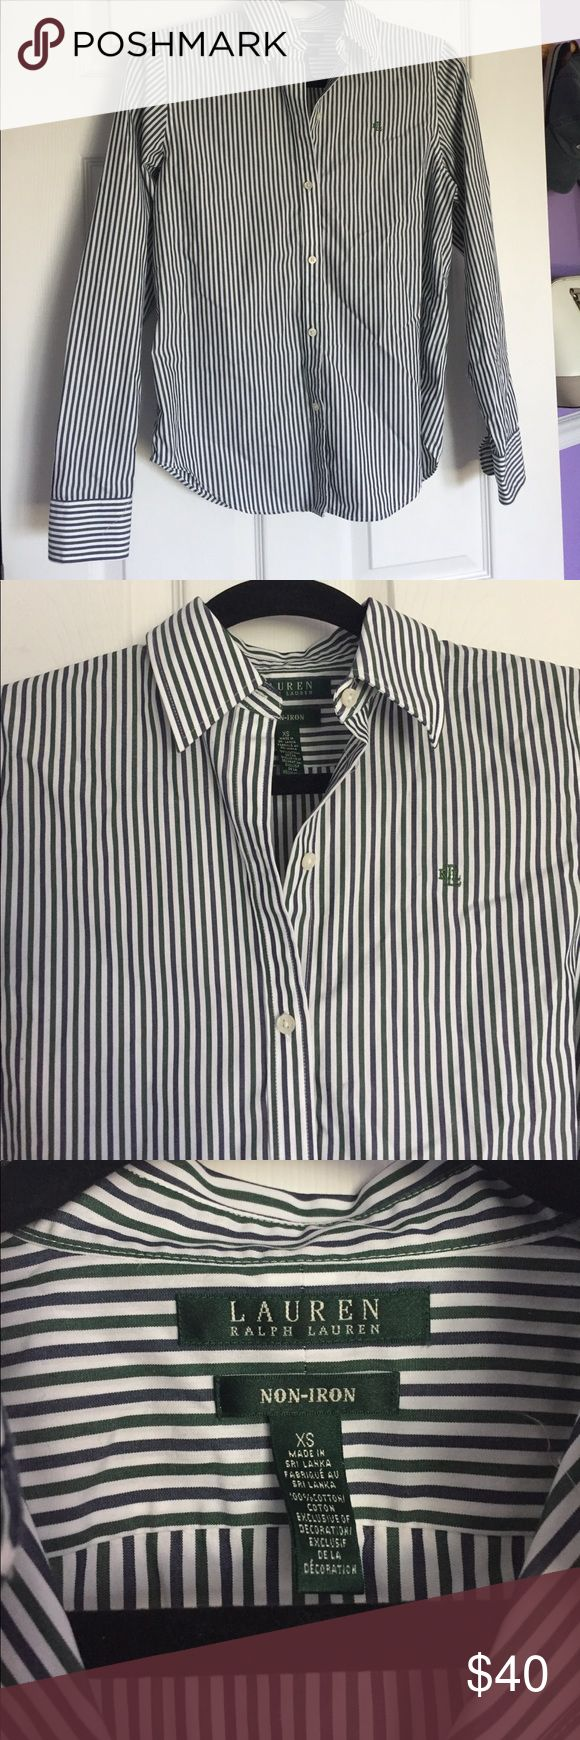 Ralph Lauren Striped Dress Shirt This Ralph Lauren dress shirt is no-iron which means it's very easy to take care of! The mainly white shirt with thin navy and green stripes is classy and preppy! The shirt is in great condition and has only been worn a few times. Lauren Ralph Lauren Tops Button Down Shirts